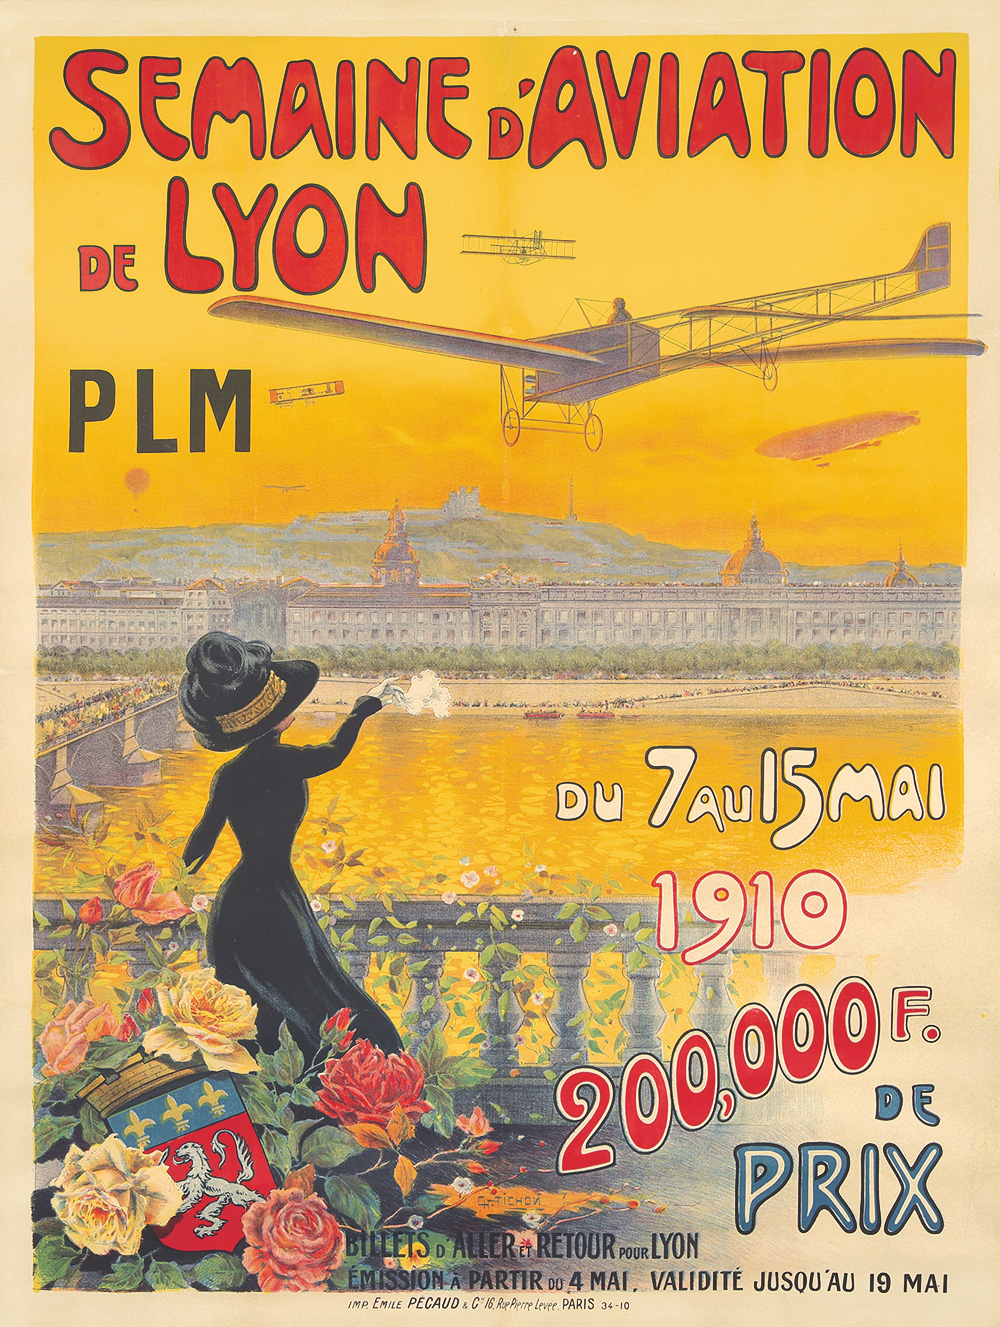 71. Semaine d'Aviation de Lyon. 1910.